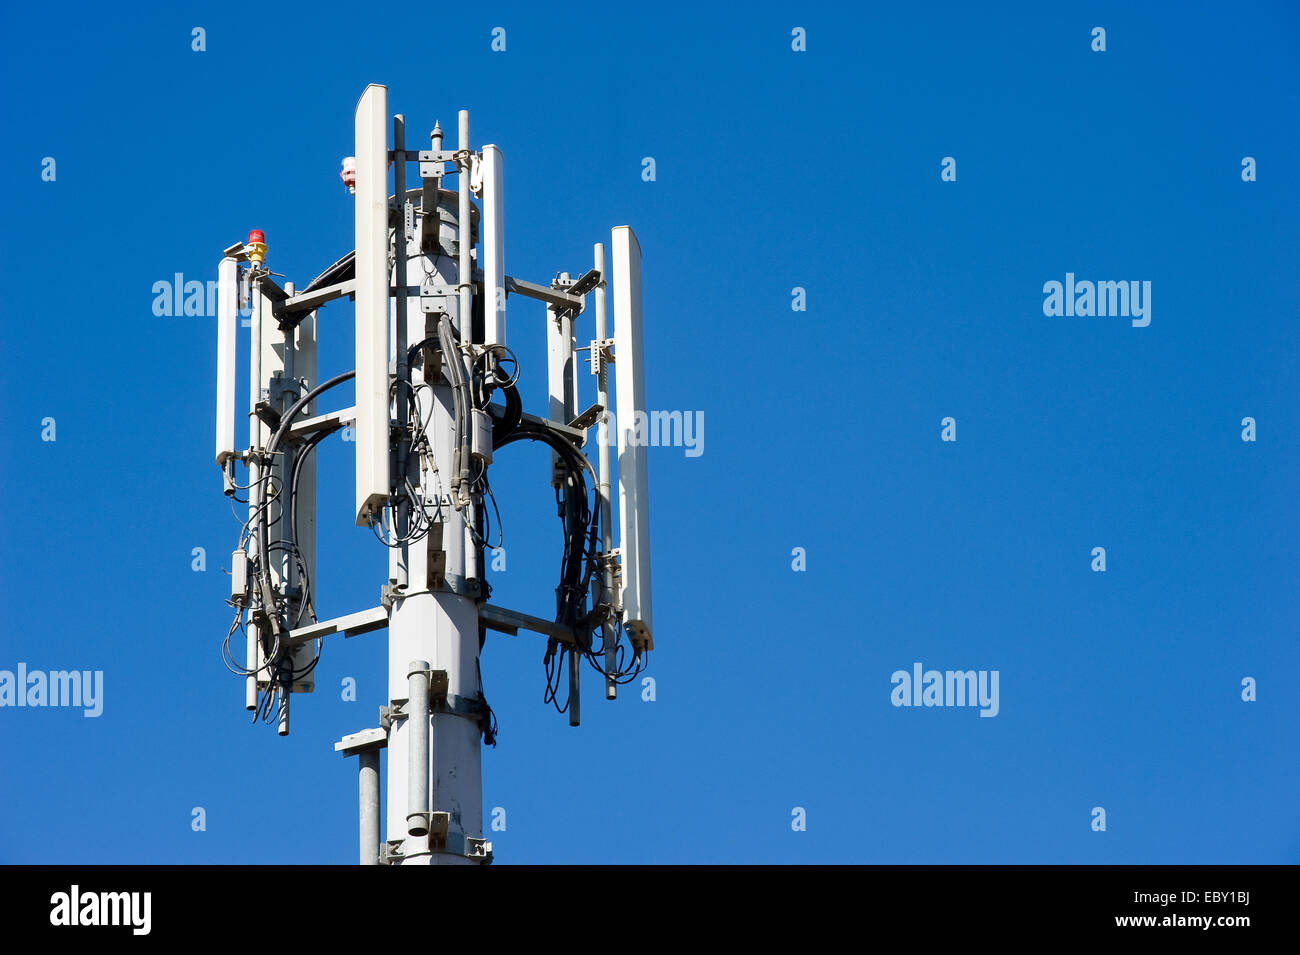 Antenna for mobile network - Stock Image